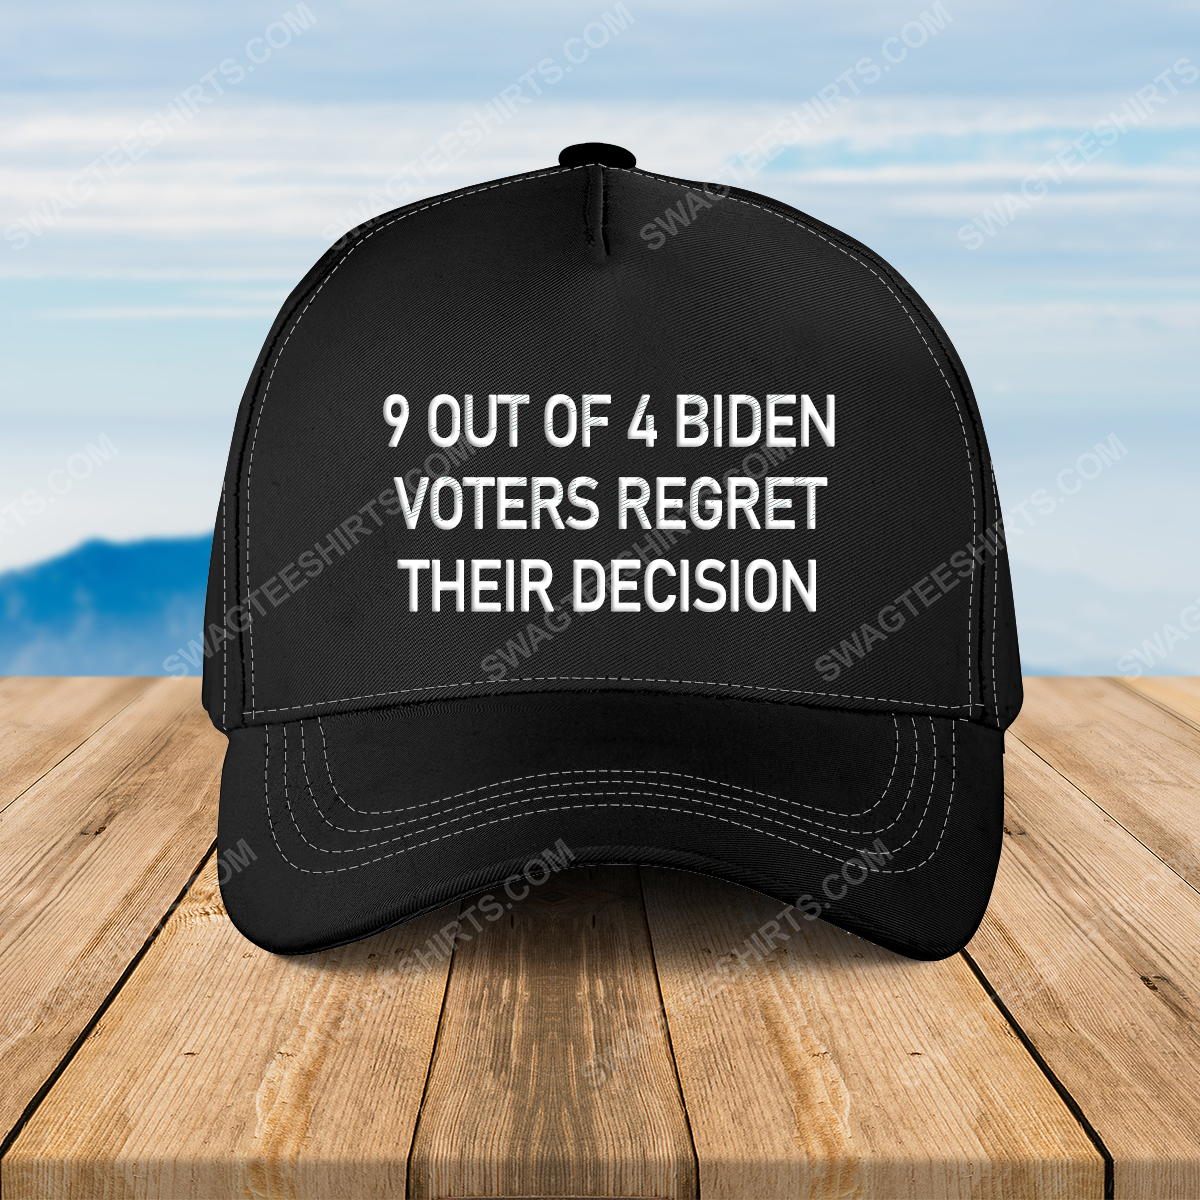 9 out of 4 biden voters regret their decision full print classic hat 1 - Copy (2)